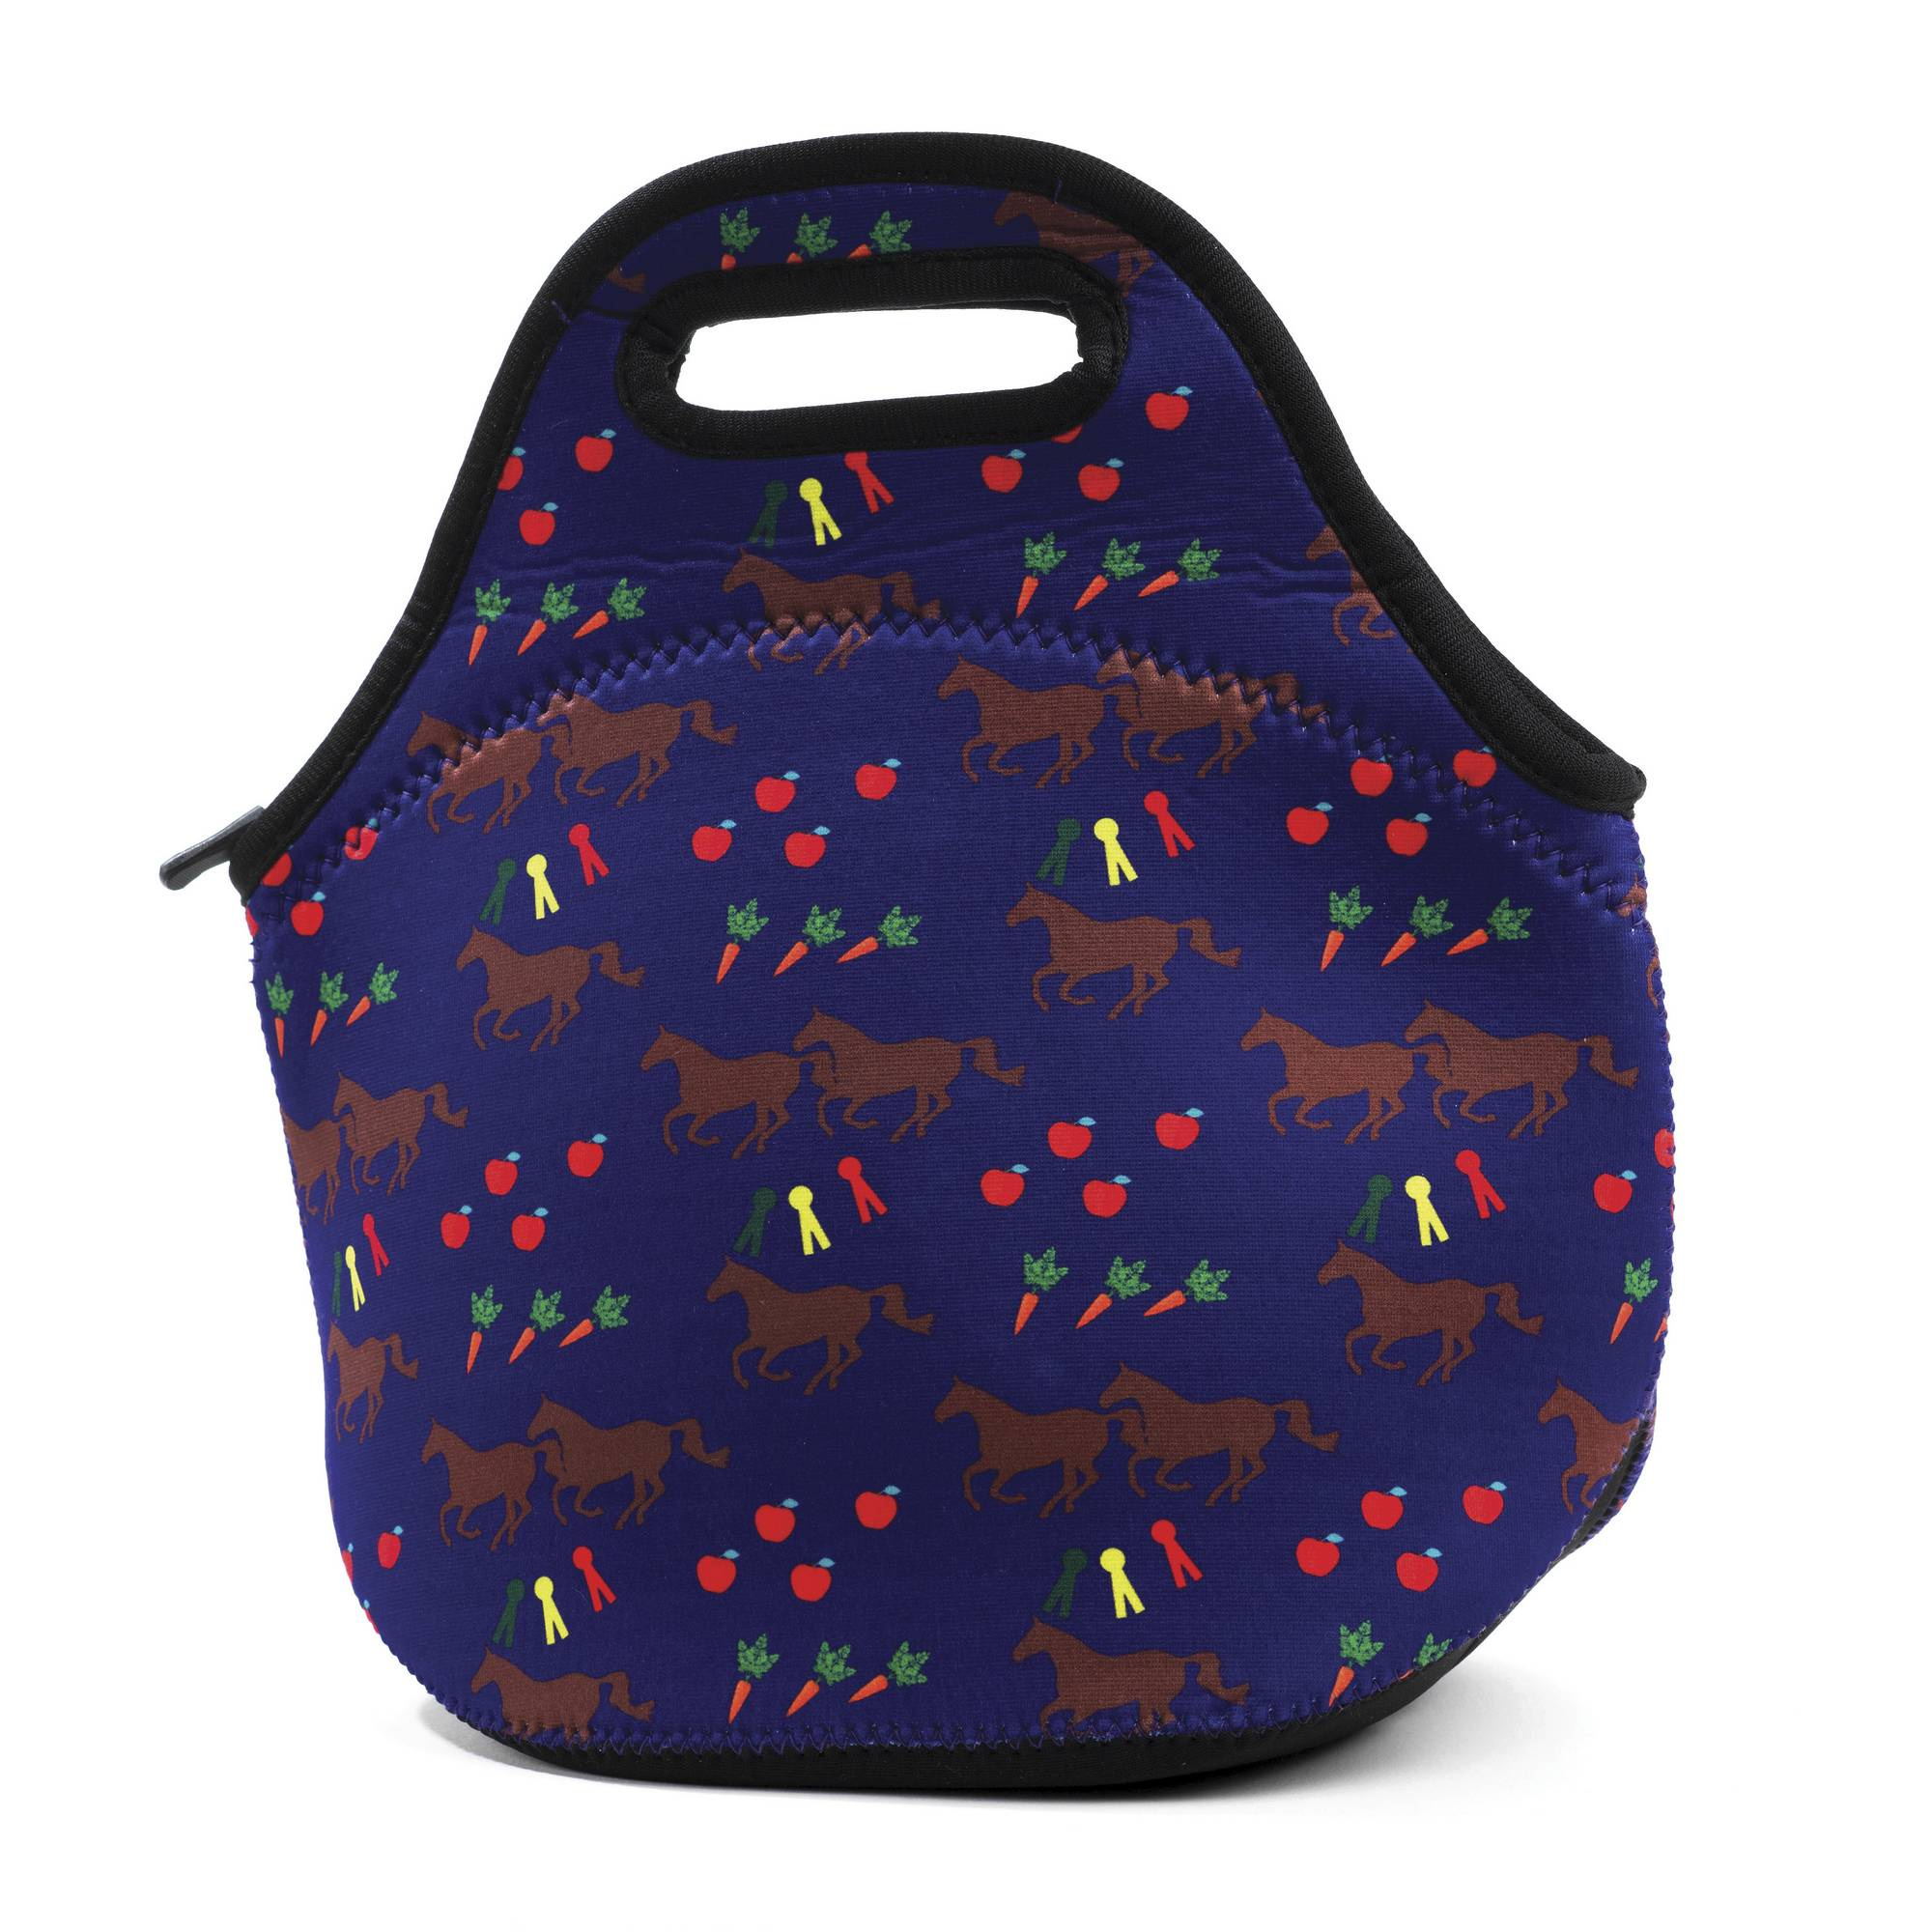 Kelley Neoprene Lunch Tote - Horses & Apples